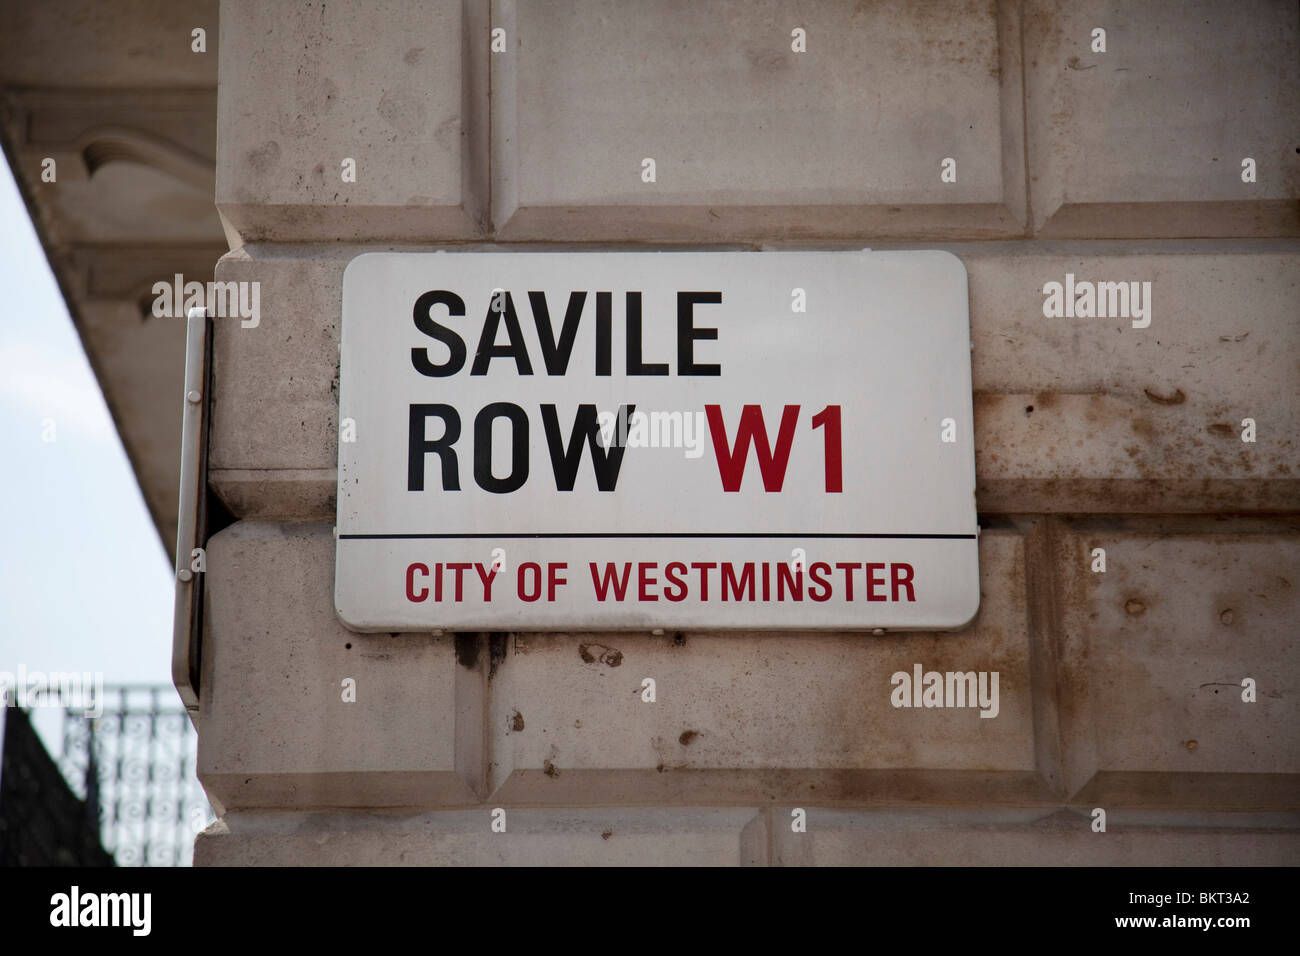 Street sign for the famous Saville Row. This street is best known for it's tailors. Tailoring and suit making. - Stock Image